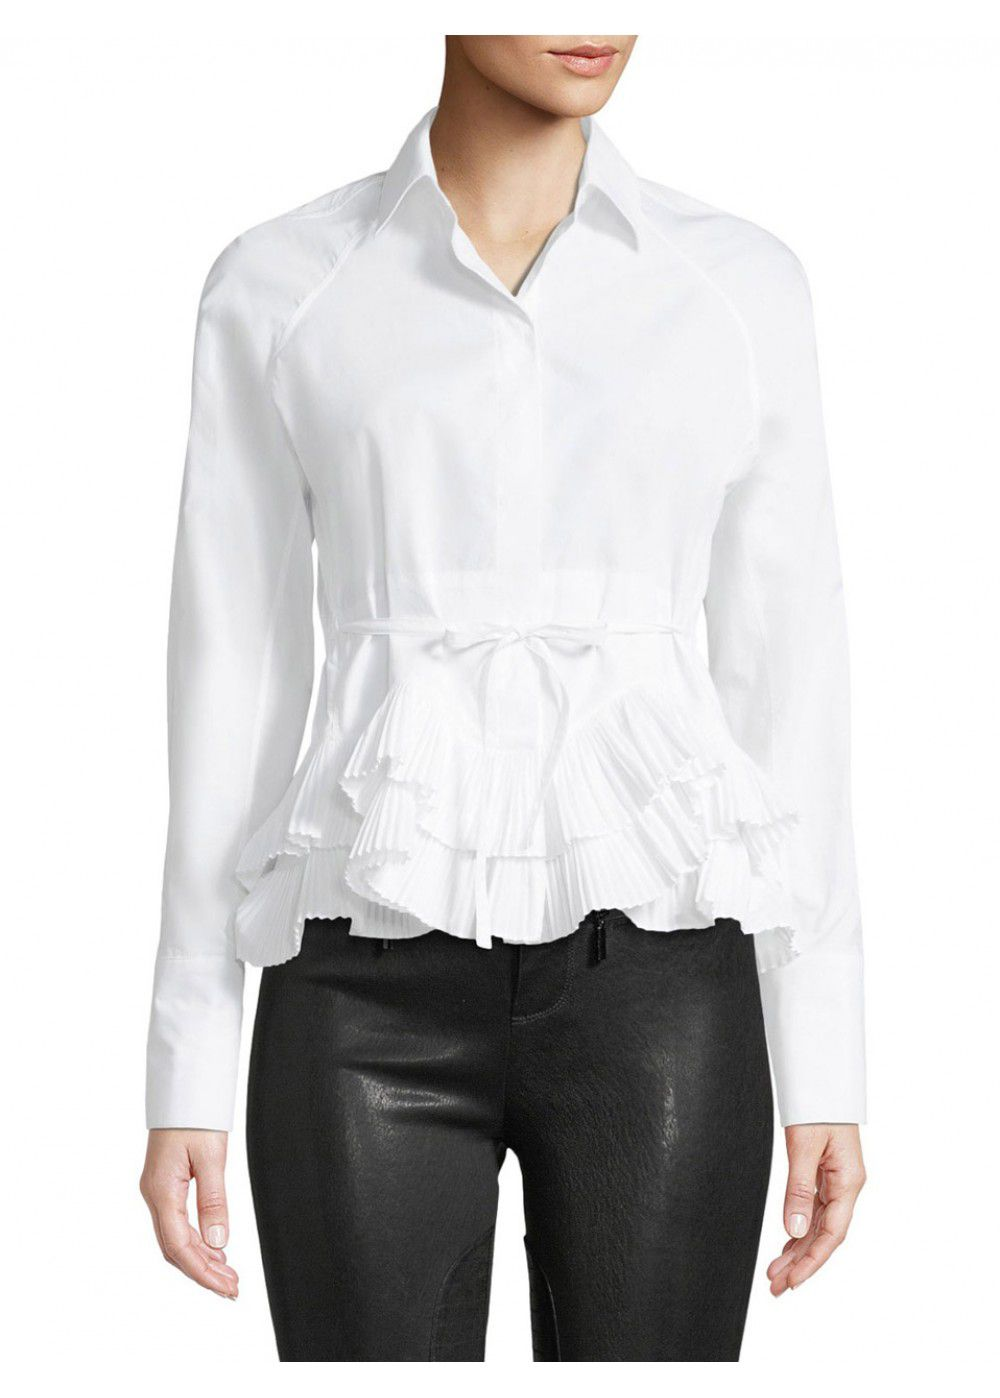 Alexis Winton Pleated Shirt